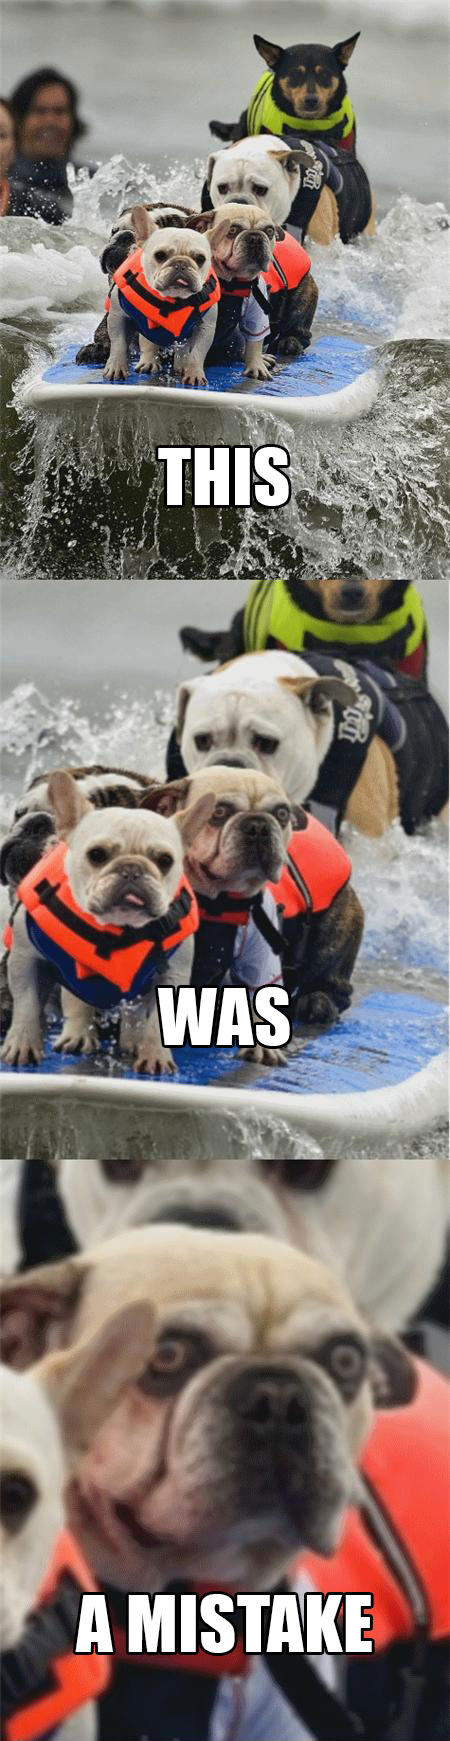 "Surfing dog says, ""This. Was. A mistake!"""